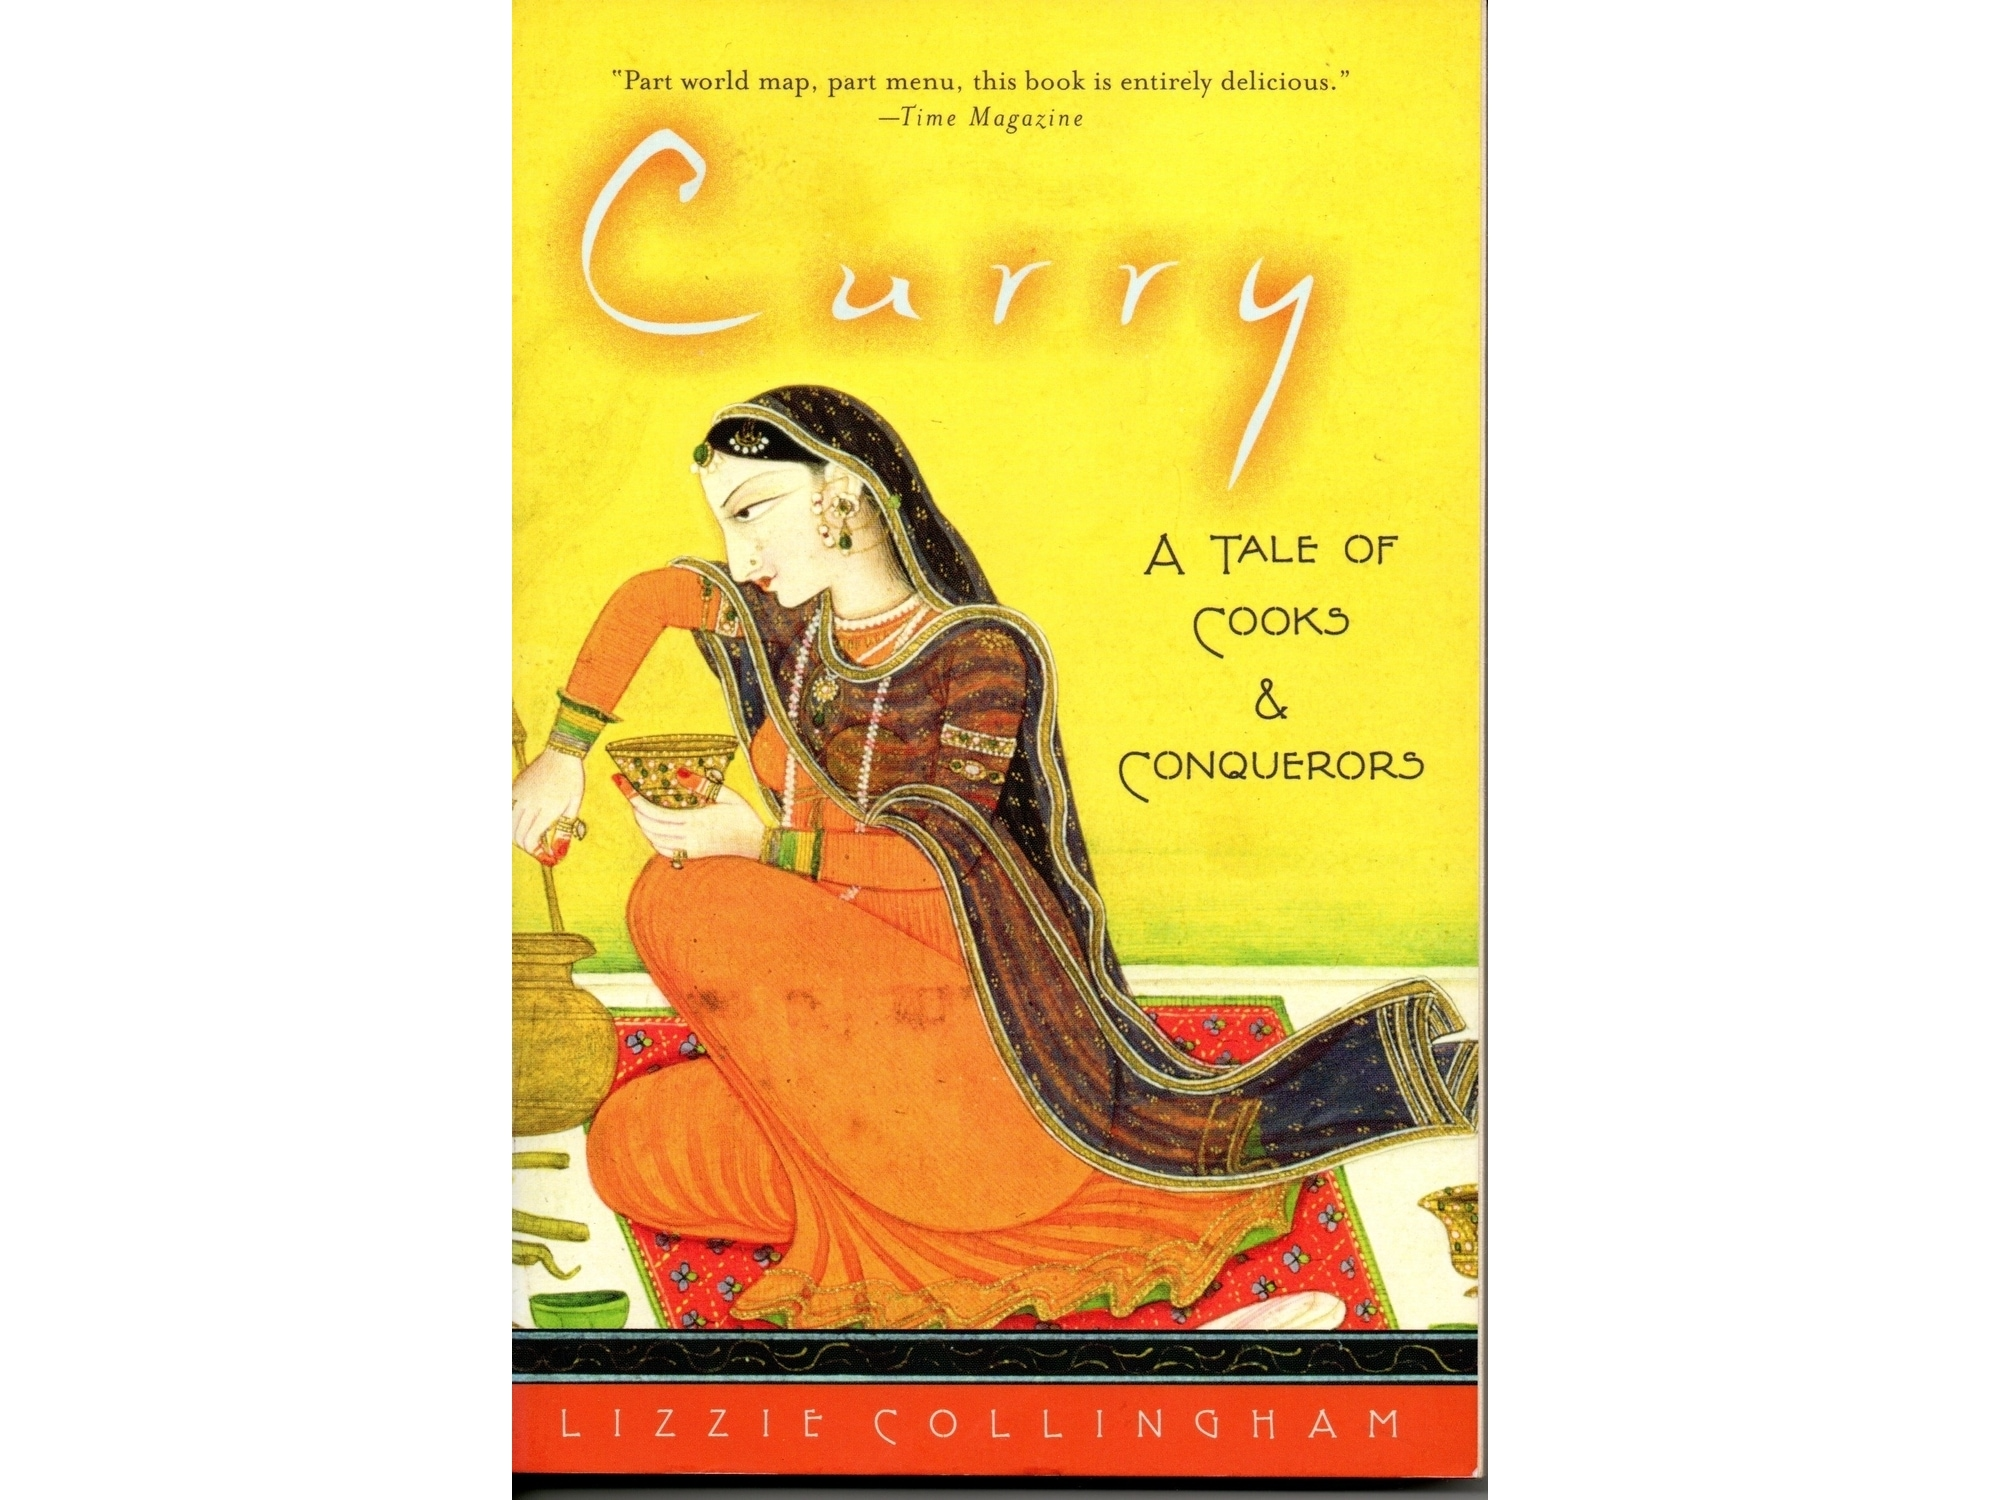 The cover of Lizzie Collinham's Curry